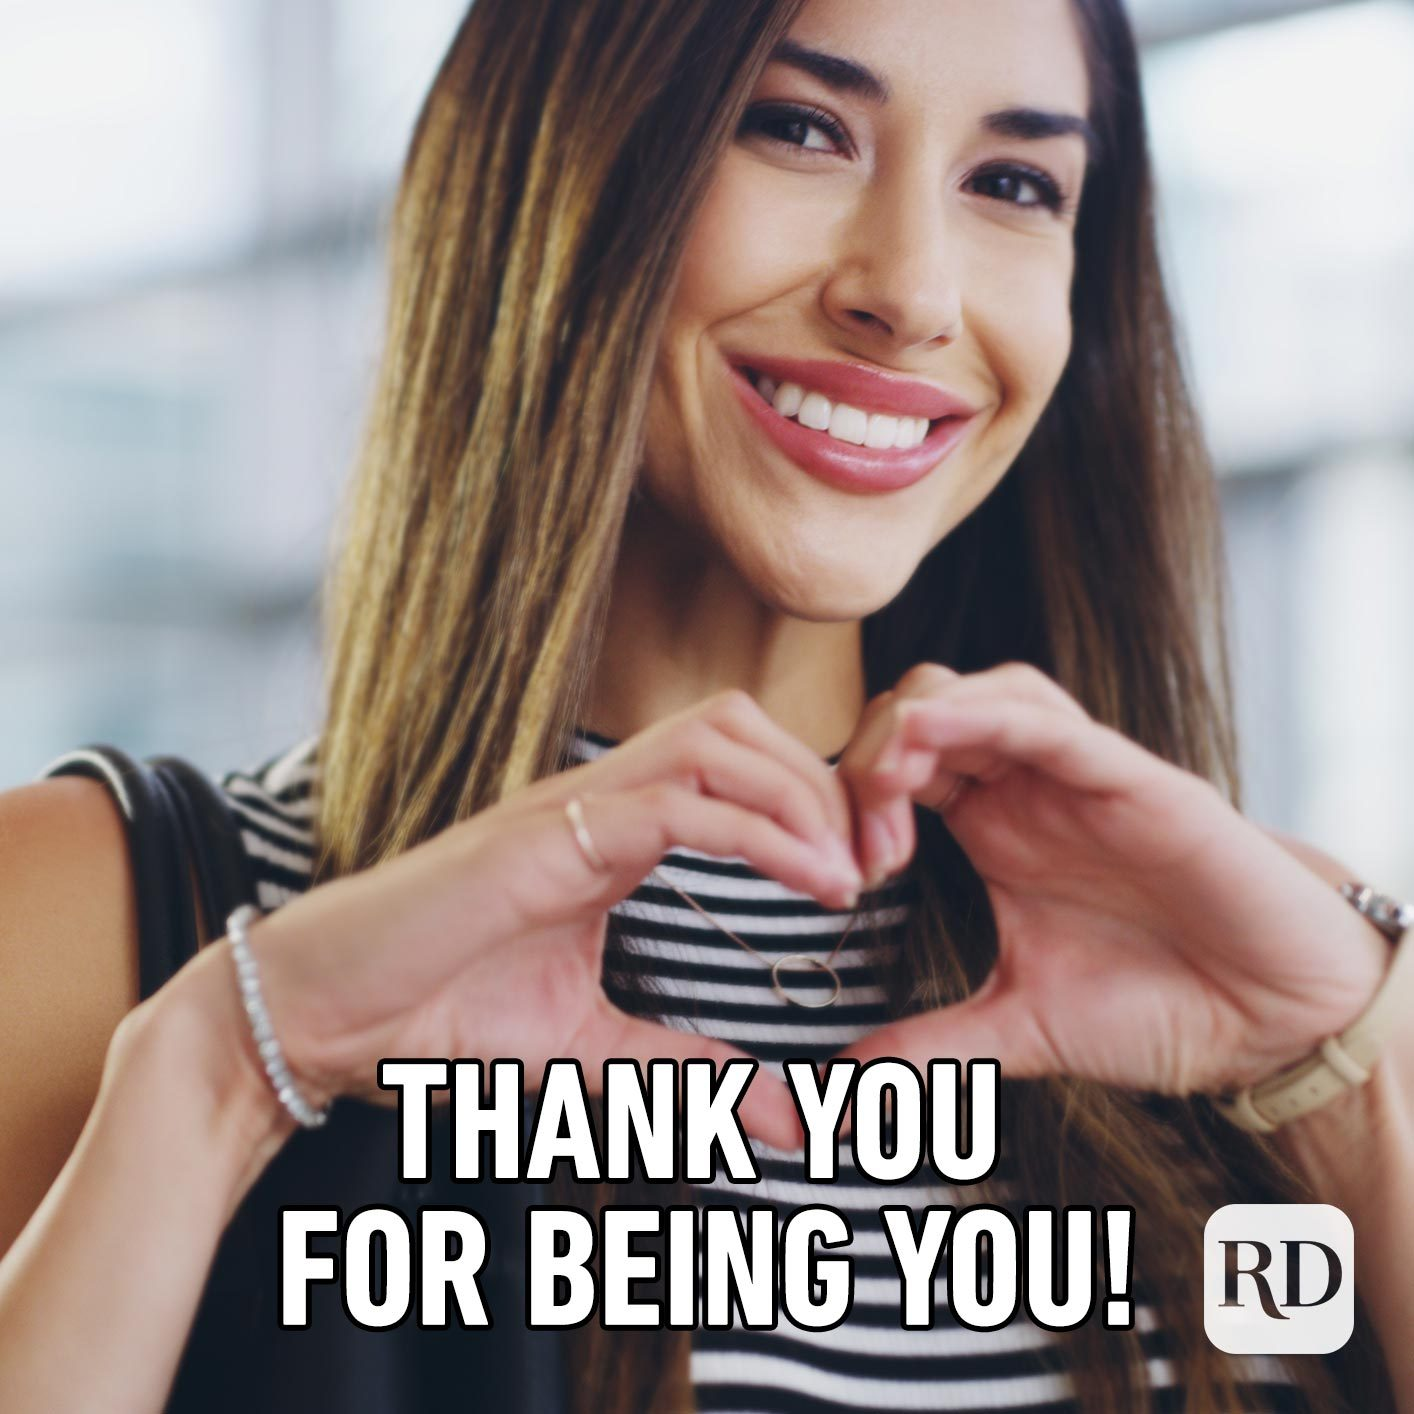 Woman holding hands in a heart shape. Meme text: Thank you for being you!